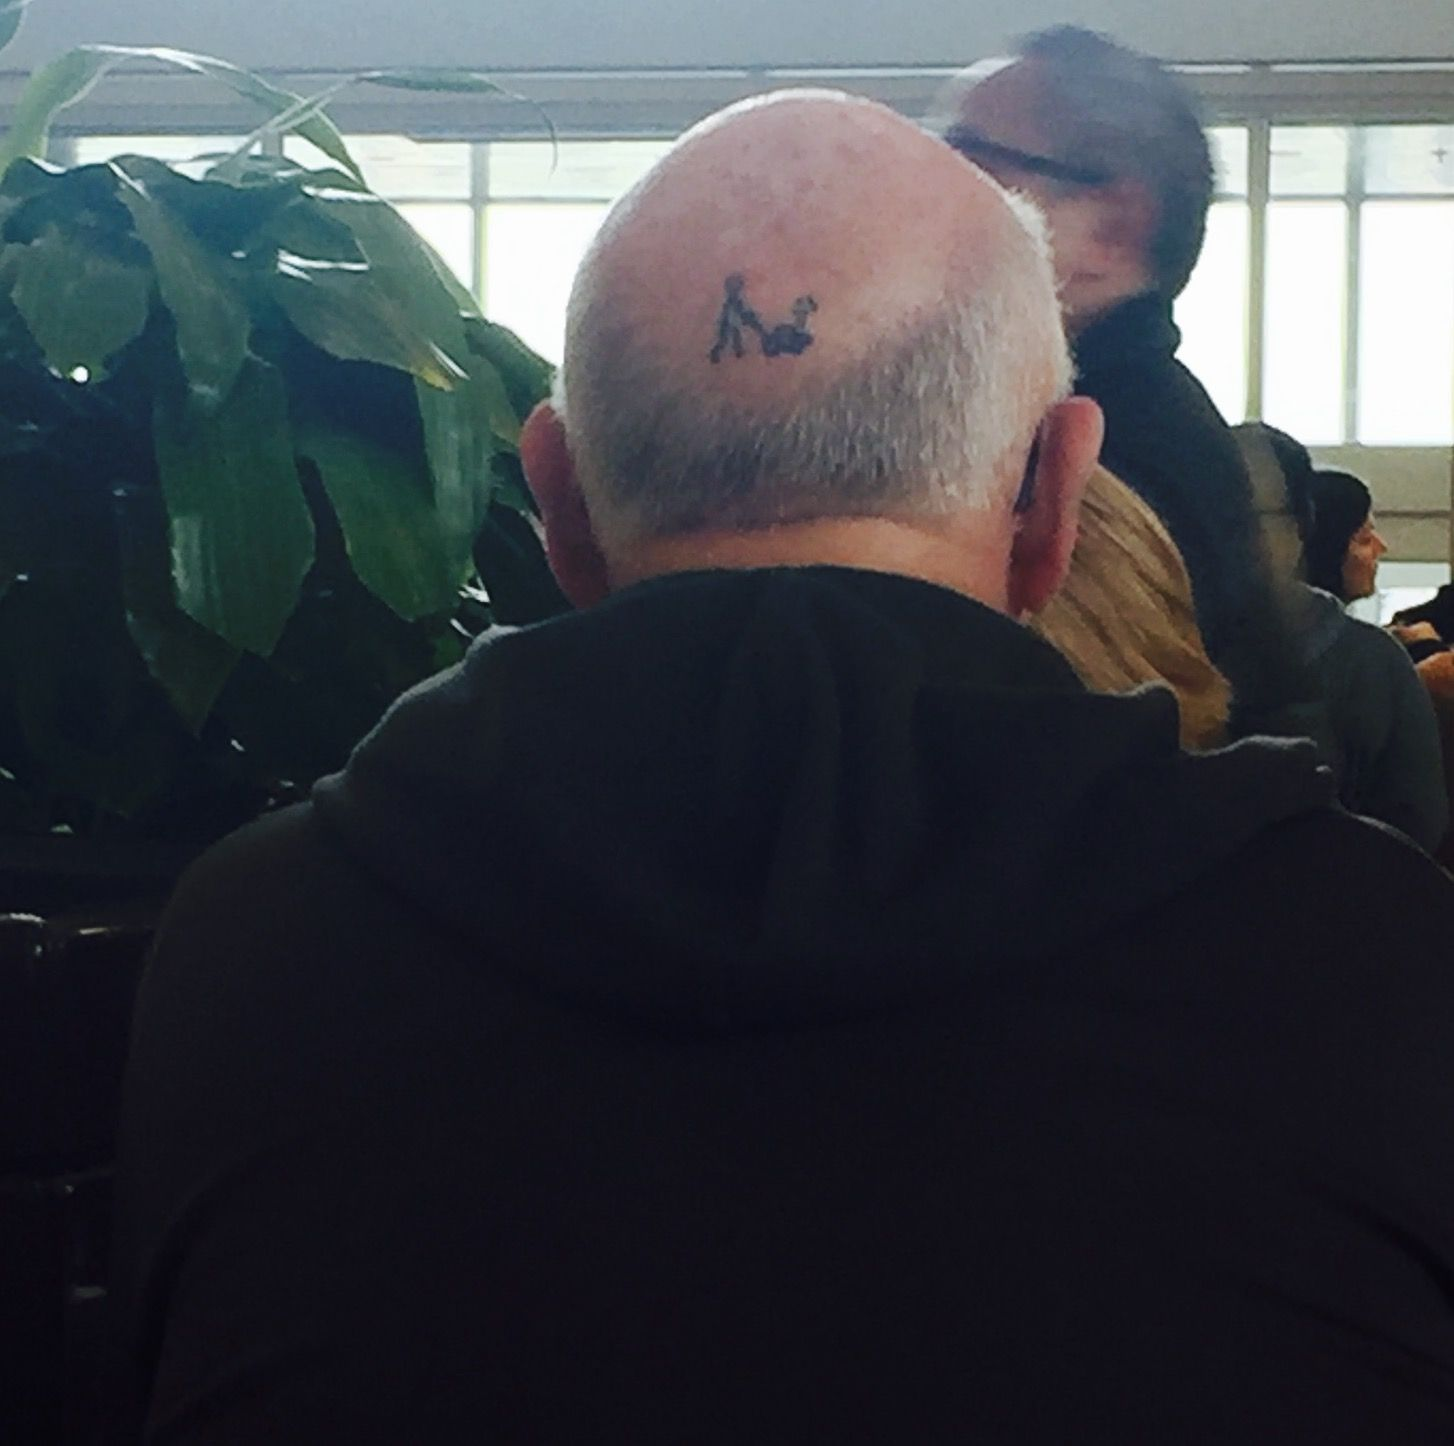 This guy has a sense of humor about balding! Its a stick man